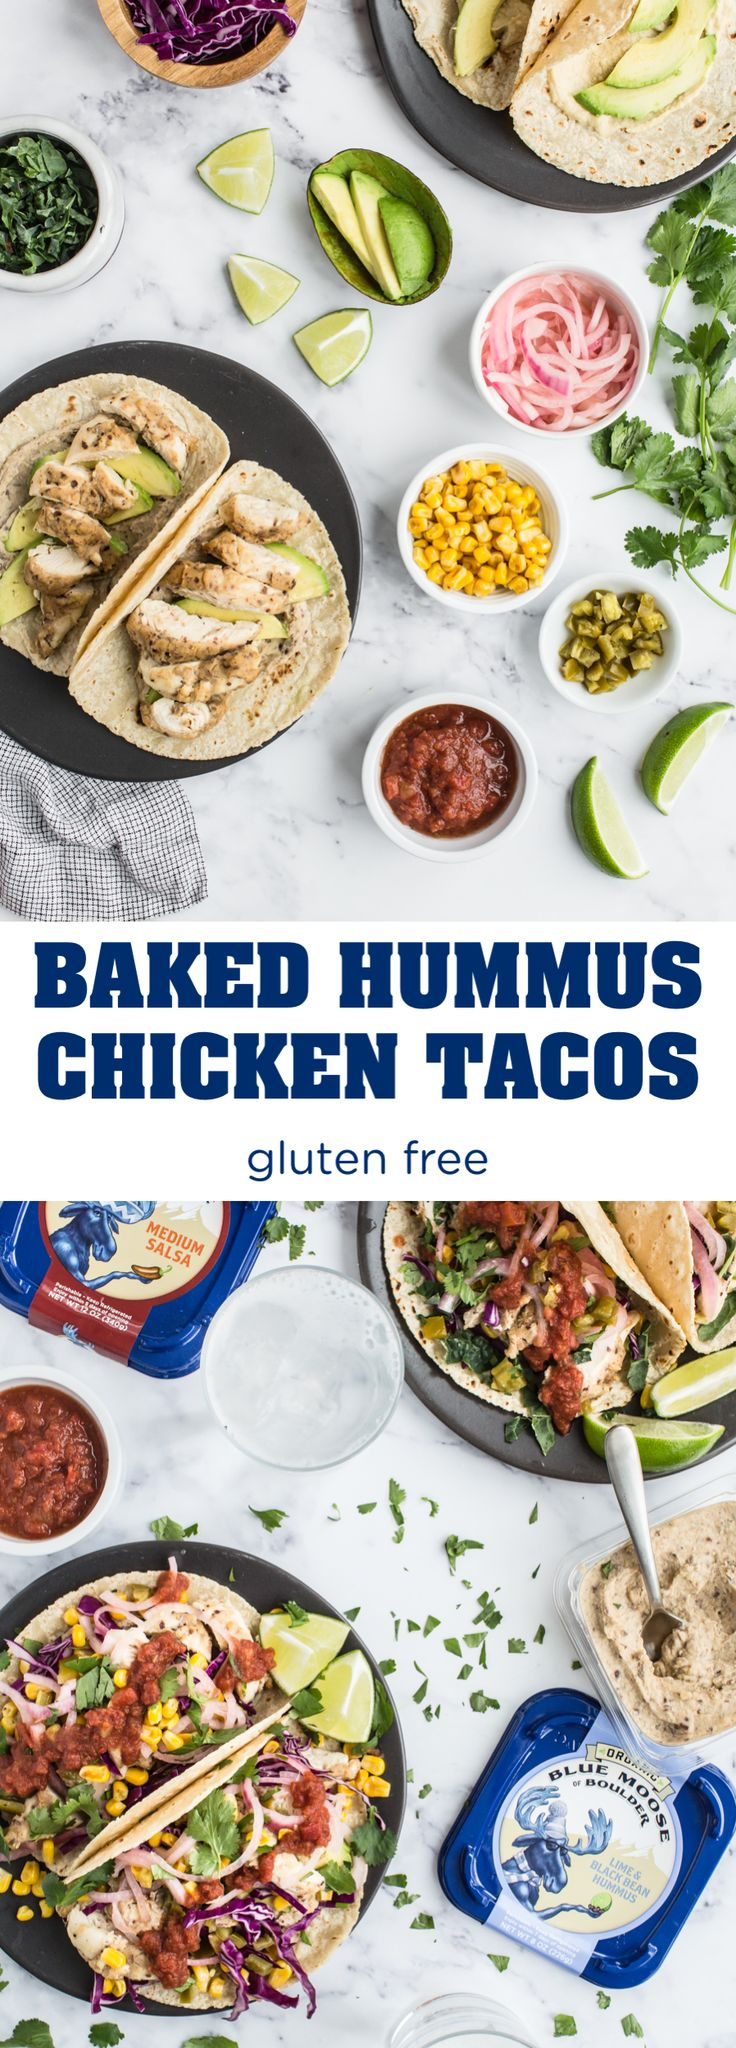 Baked Hummus Chicken Tacos | This recipe is the perfect weeknight dinner or party appetizer. This recipe calls for marinating the chicken and coating it in Blue Moose Organic Lime & Black Bean Hummus. When the chicken tenders bake in the oven, the hummus crisps up – which adds a deliciously crunchy texture to every bite of your taco.The topping options are endless - get creative with shredded kale, grilled corn, pickled onions, avocado and salsa!